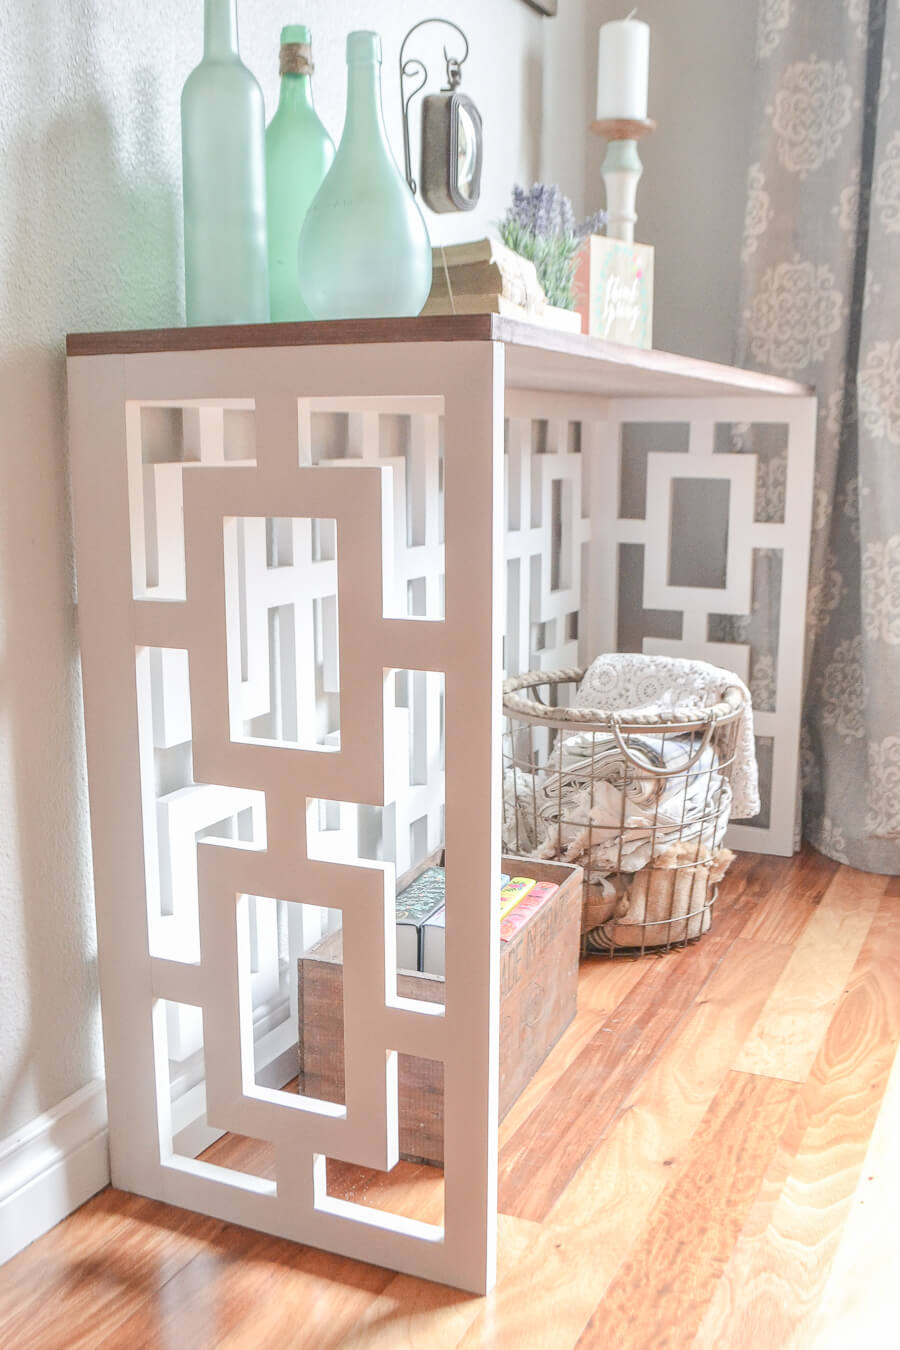 50 Best Diy Wood Craft Projects Ideas And Designs For 2020